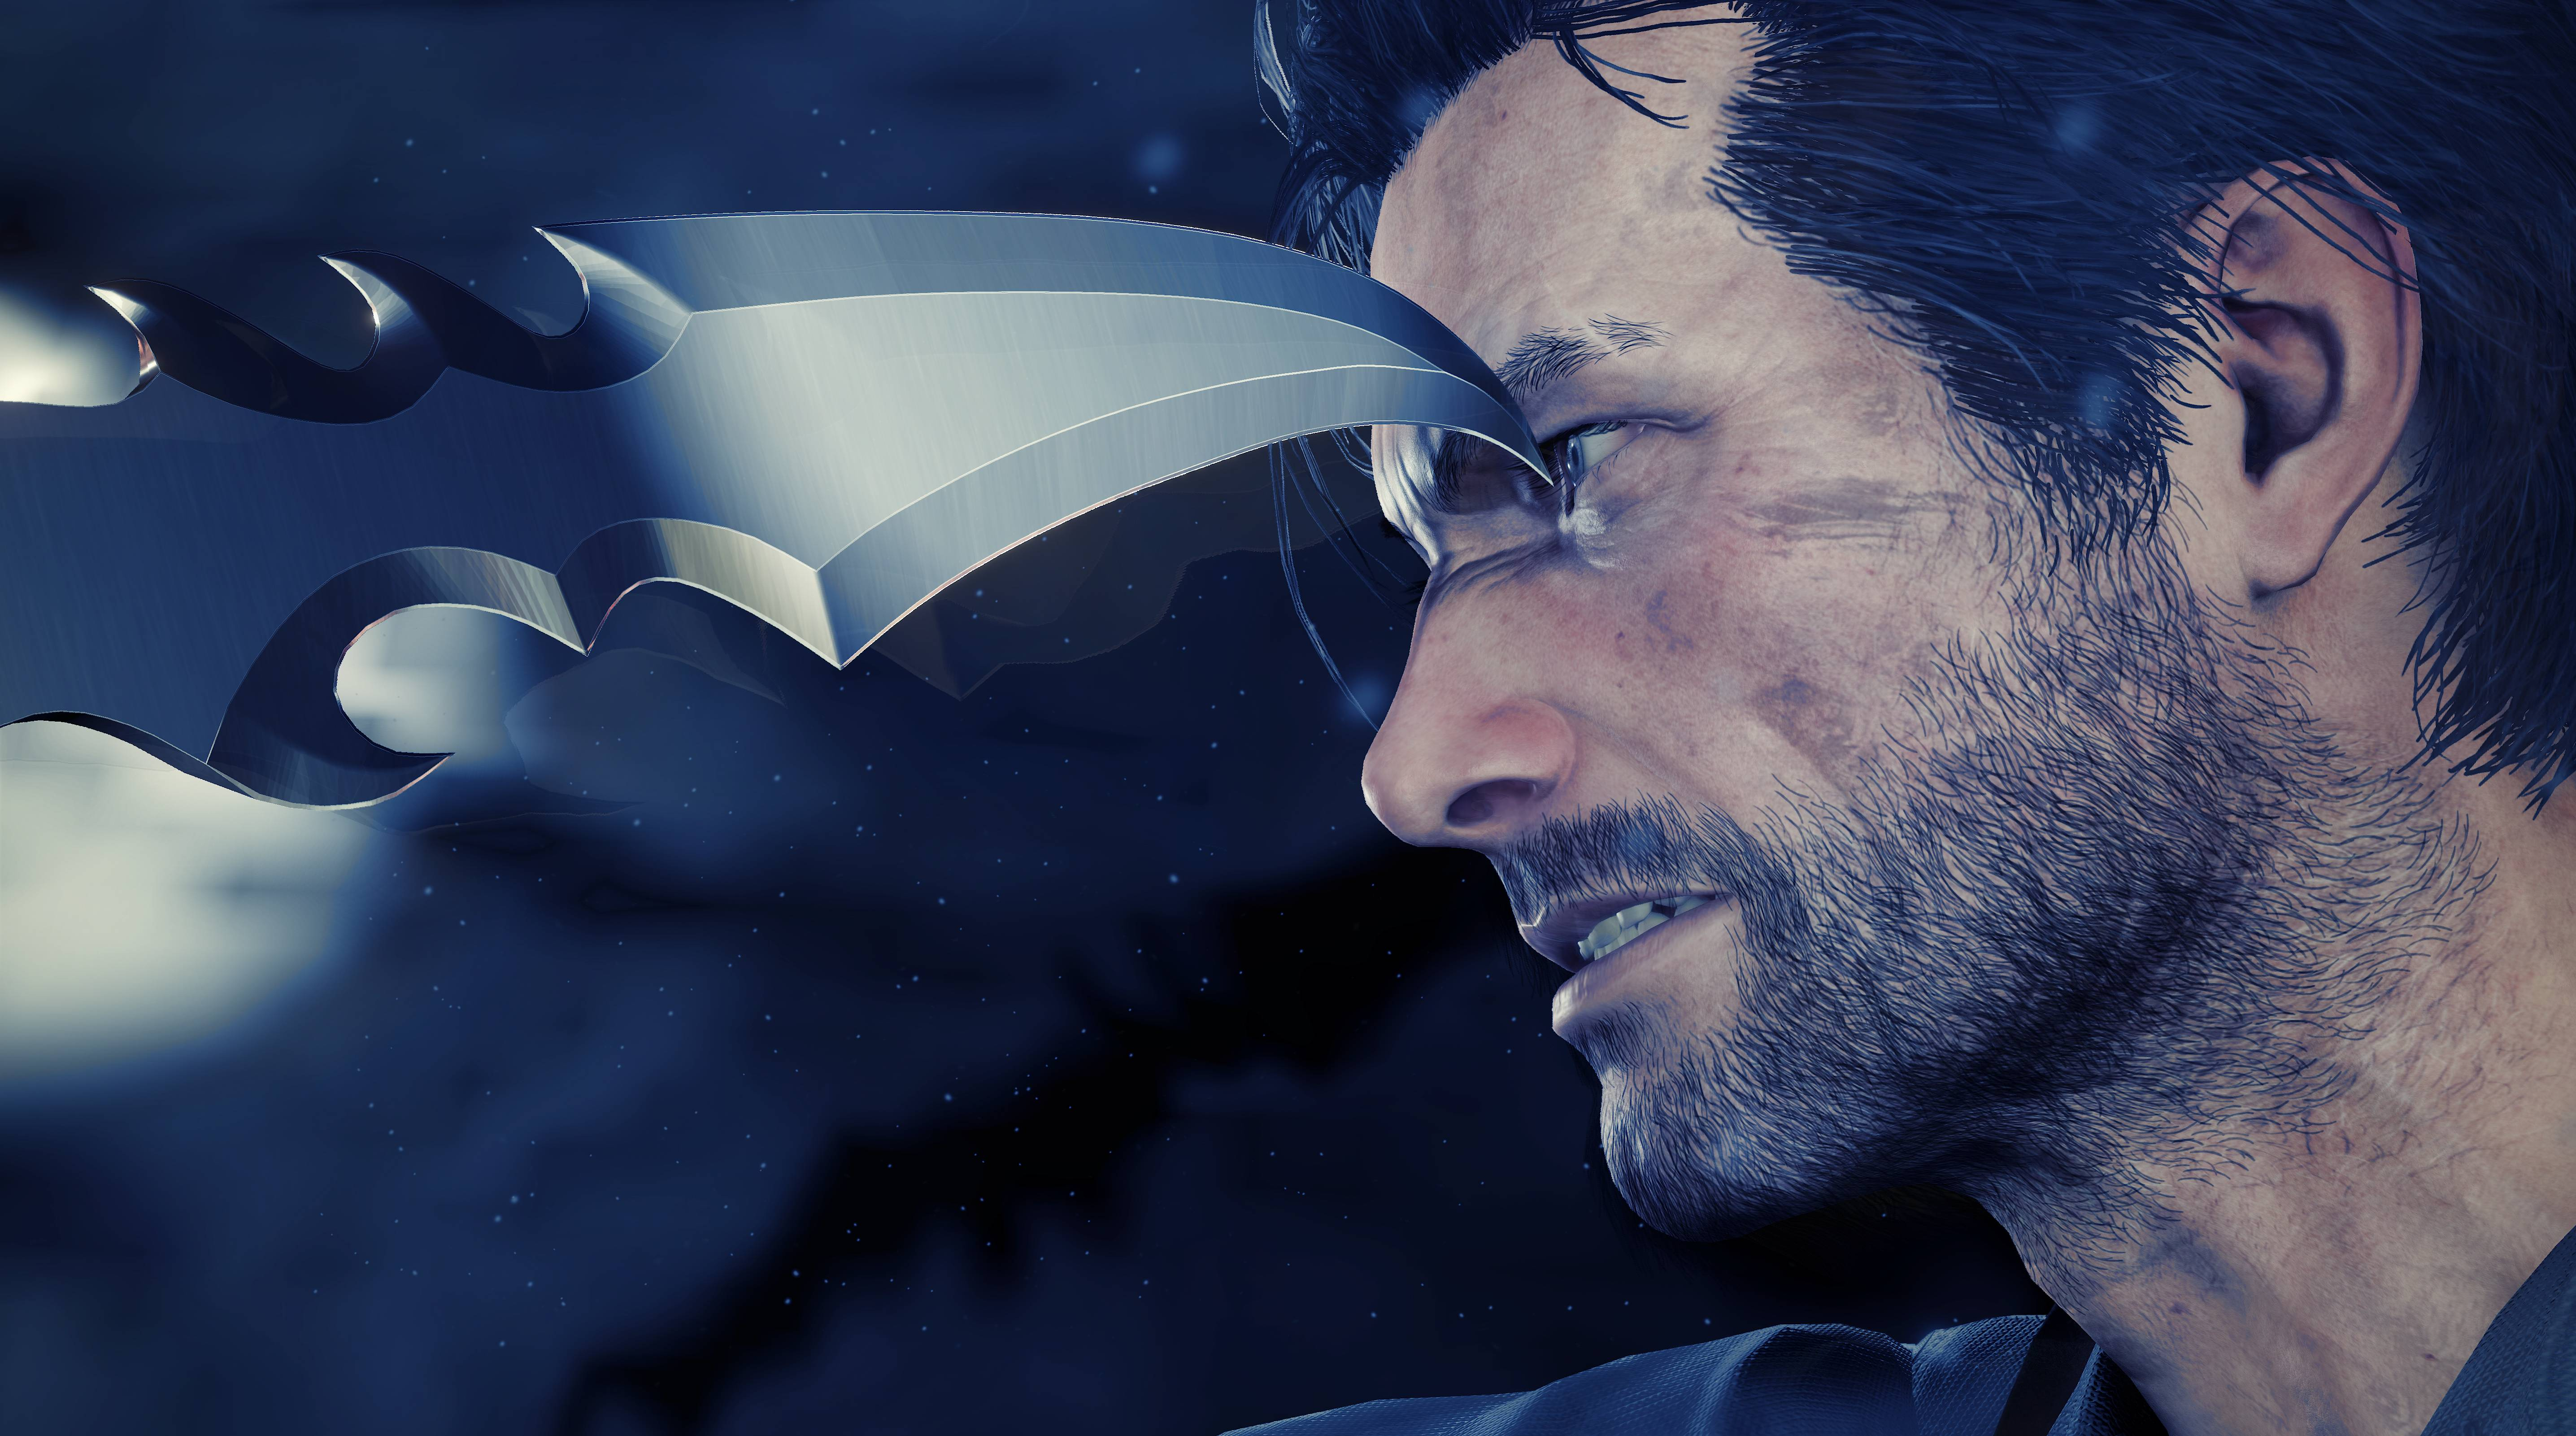 The Evil Within 2 Wallpapers Wallpaper Cave